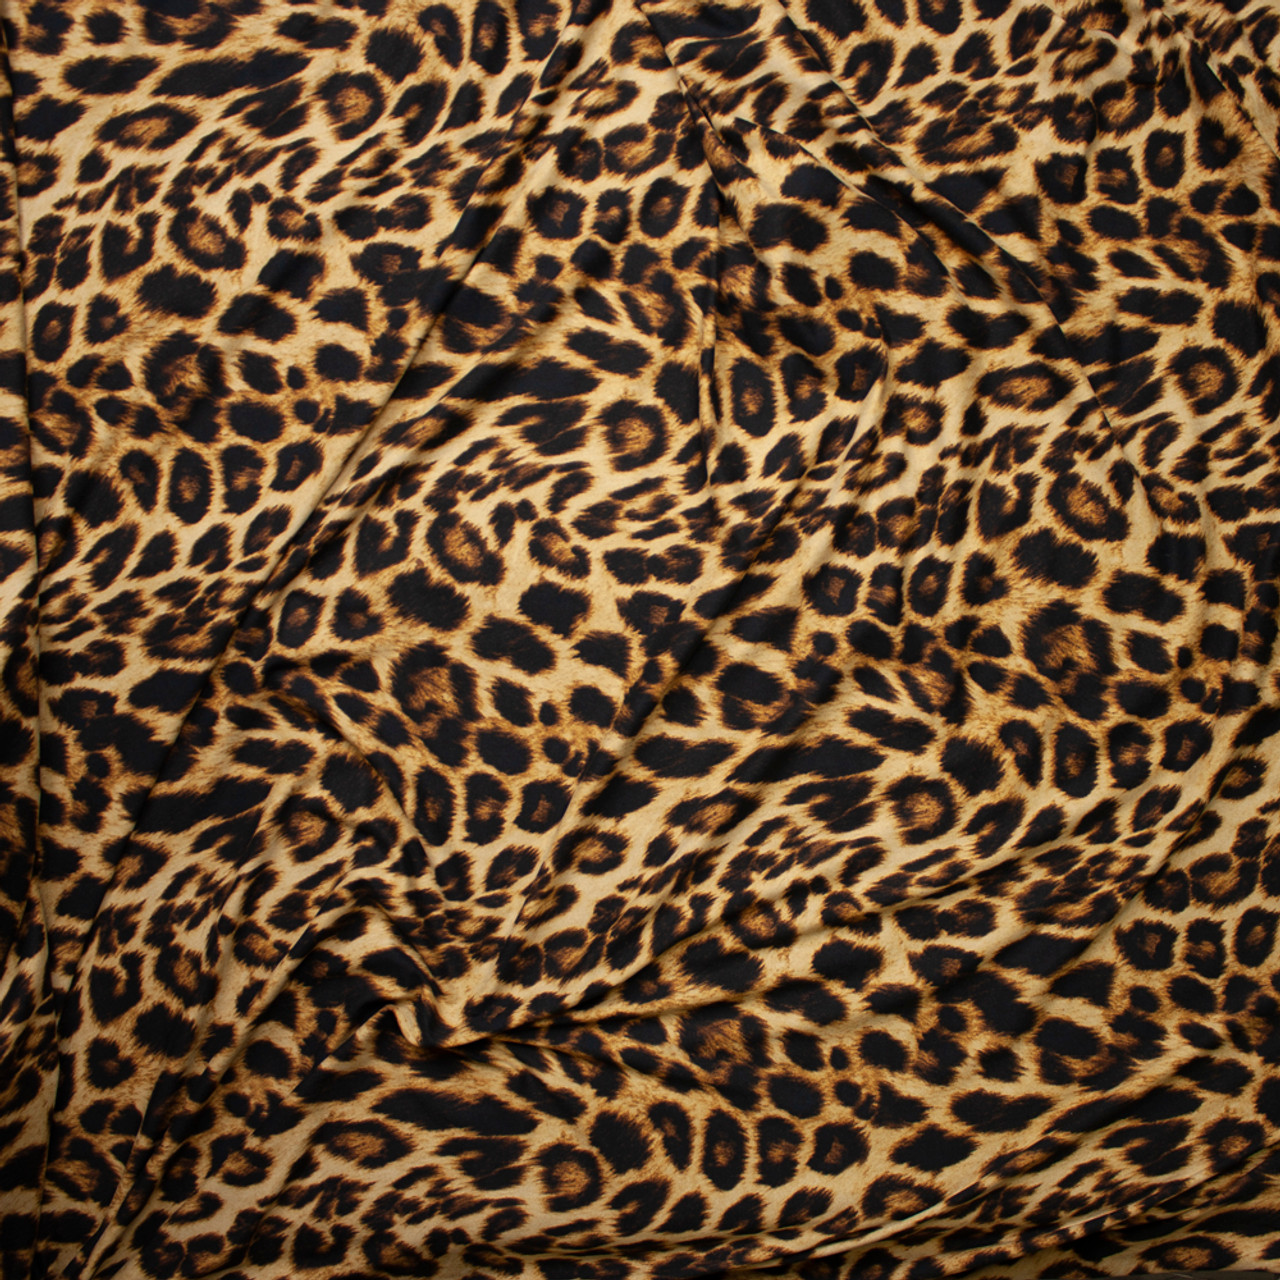 cce84aaa0e ... Leopard Print Double Brushed Poly Spandex Fabric By The Yard - Wide shot